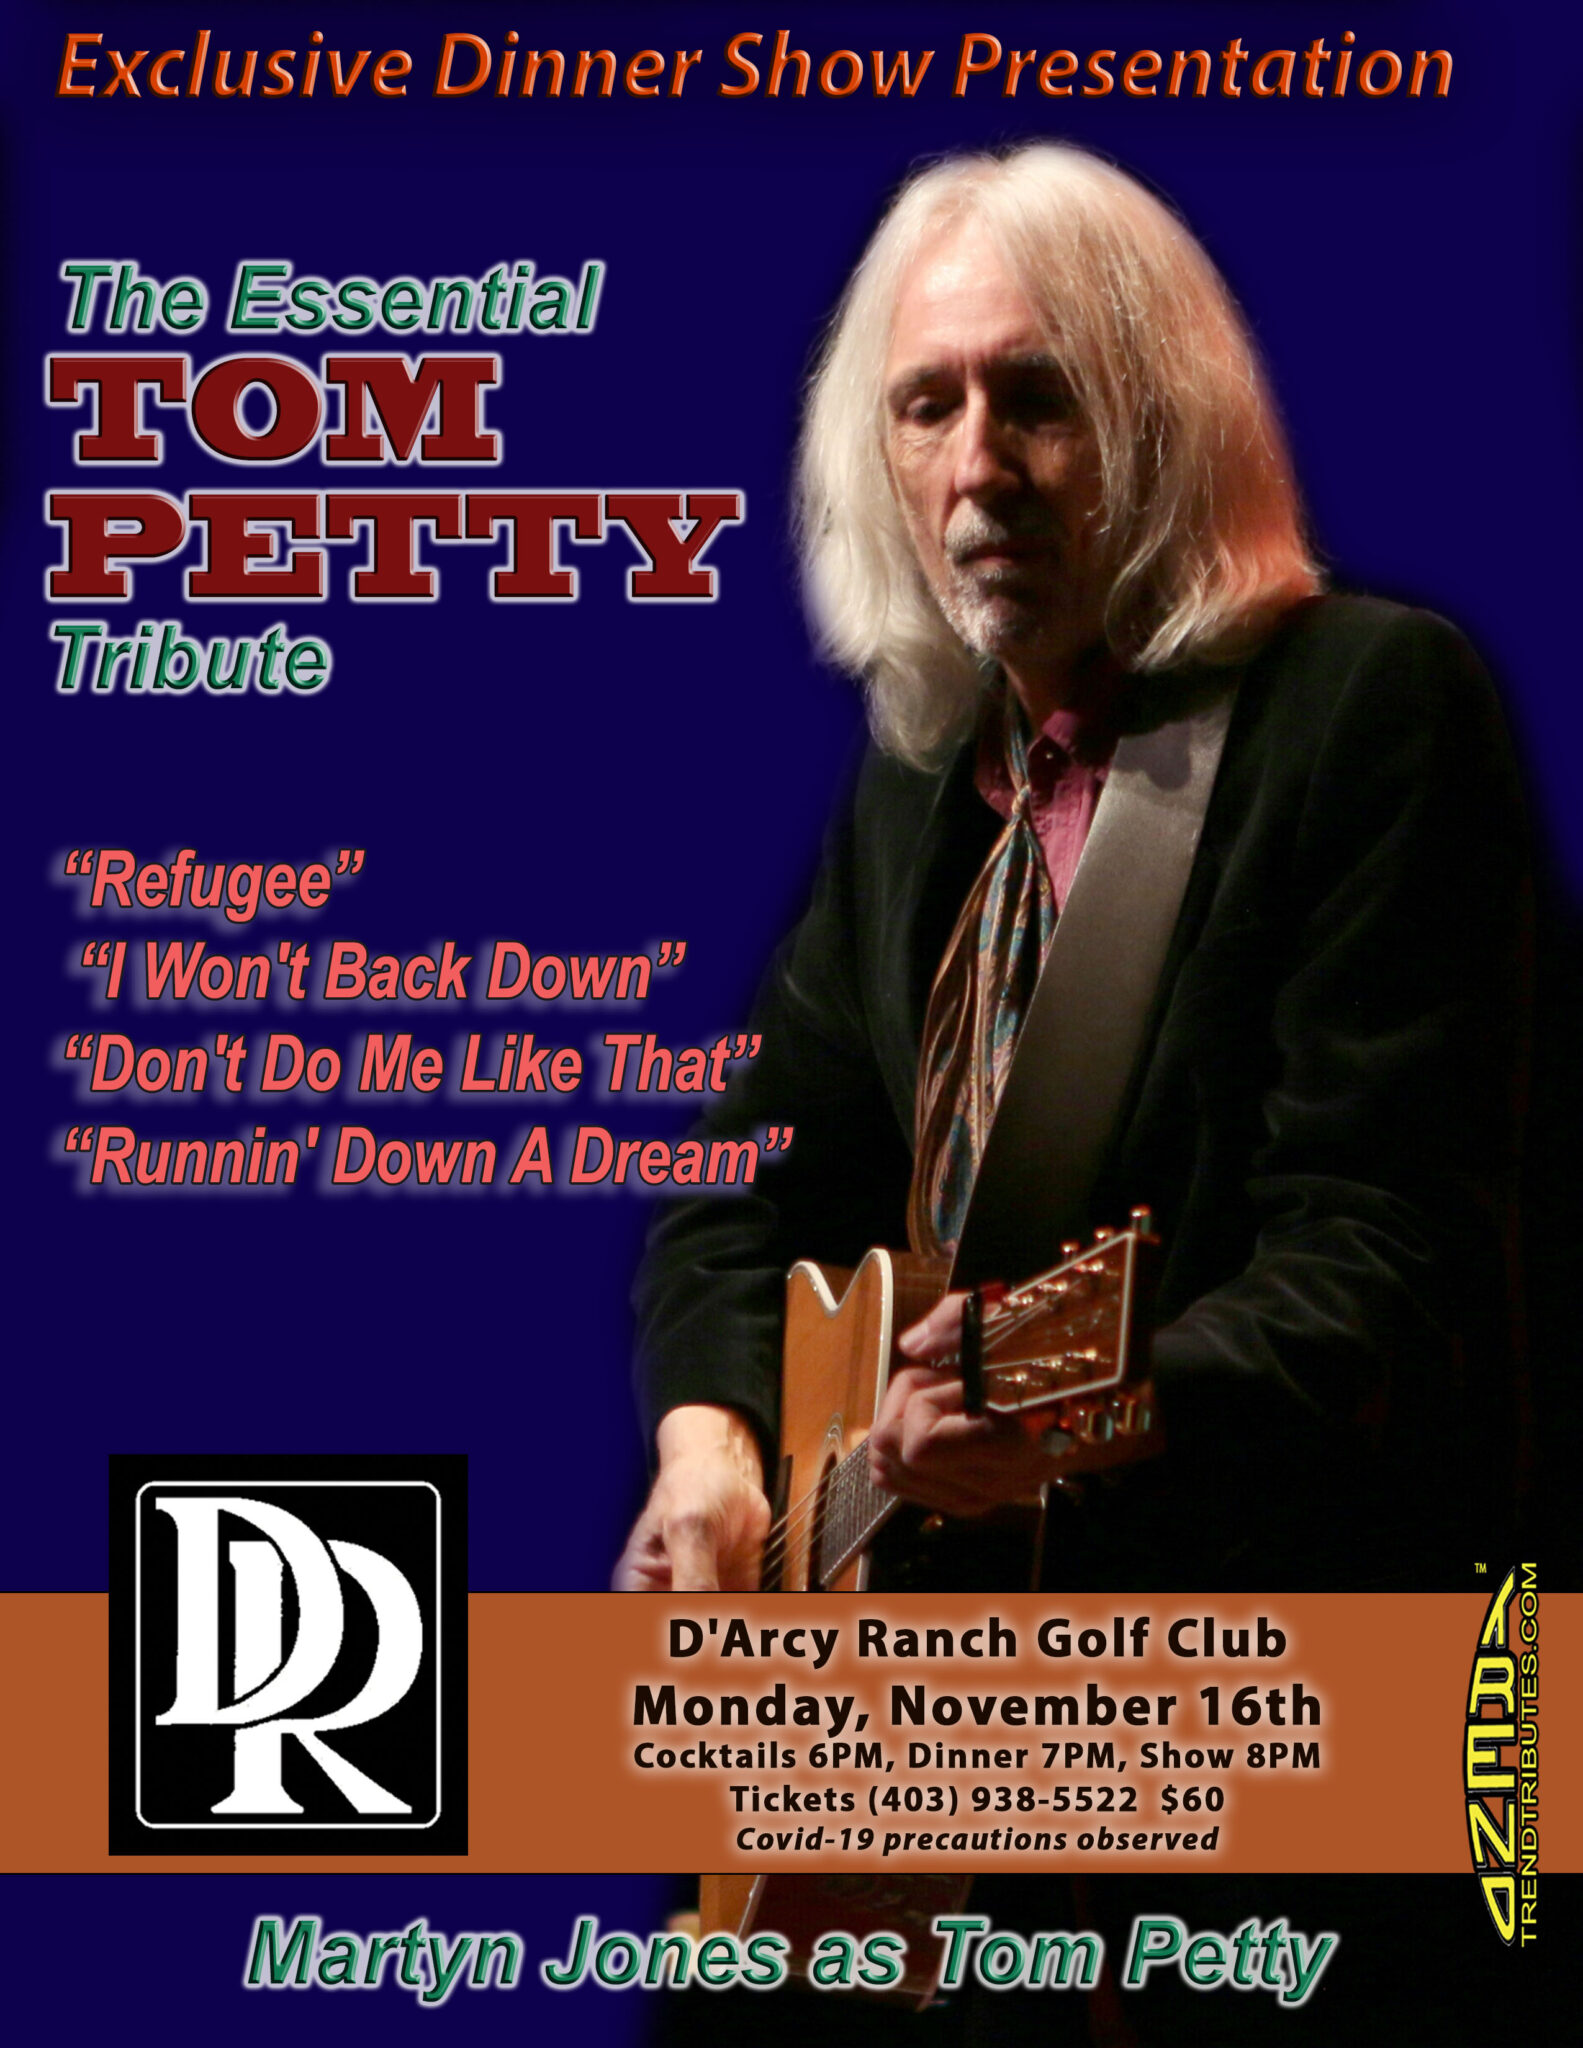 TOM PETTY D'ARCY RANCH POSTER, 8.5 X 11